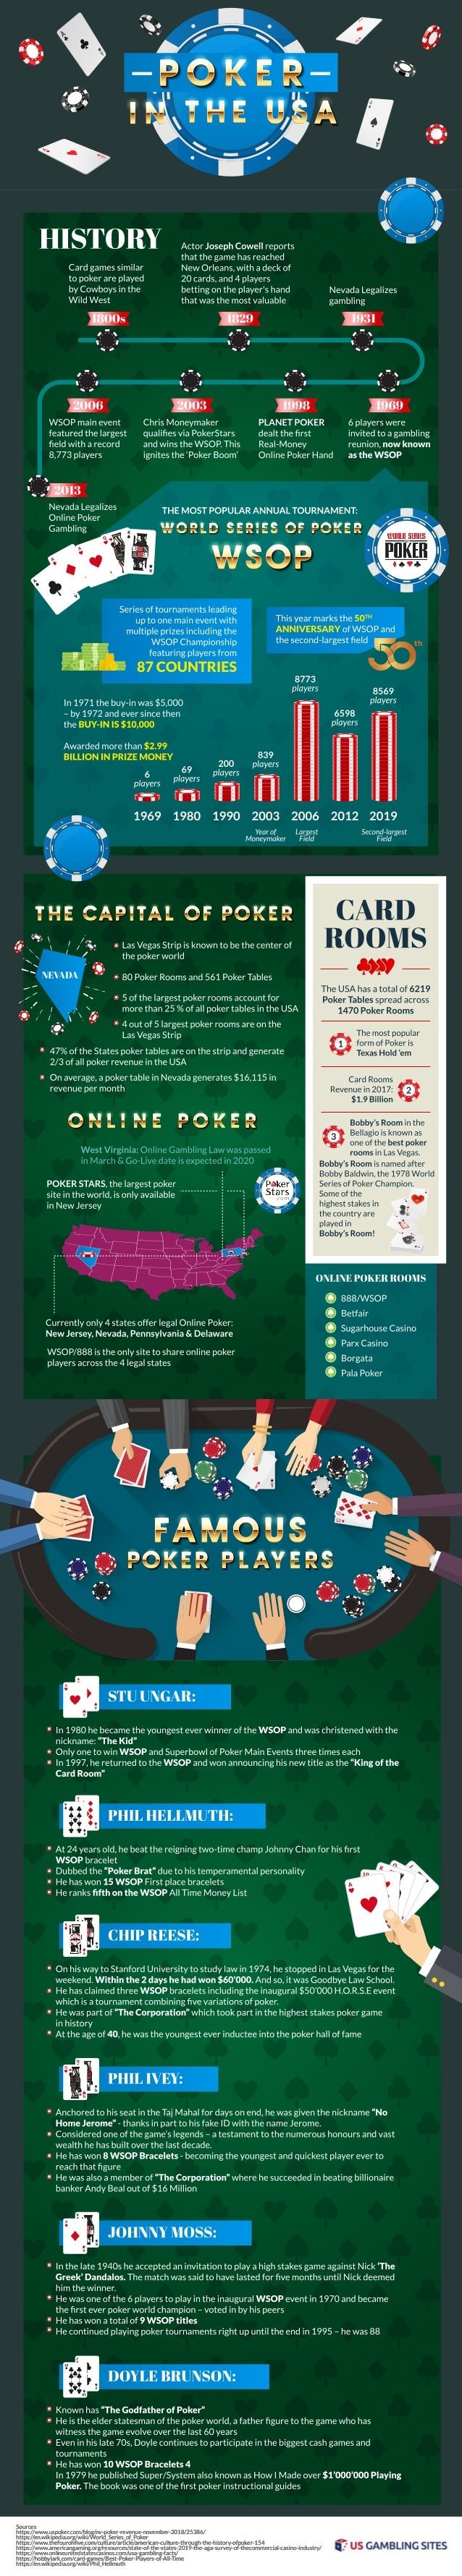 Largest poker rooms in usa 2019